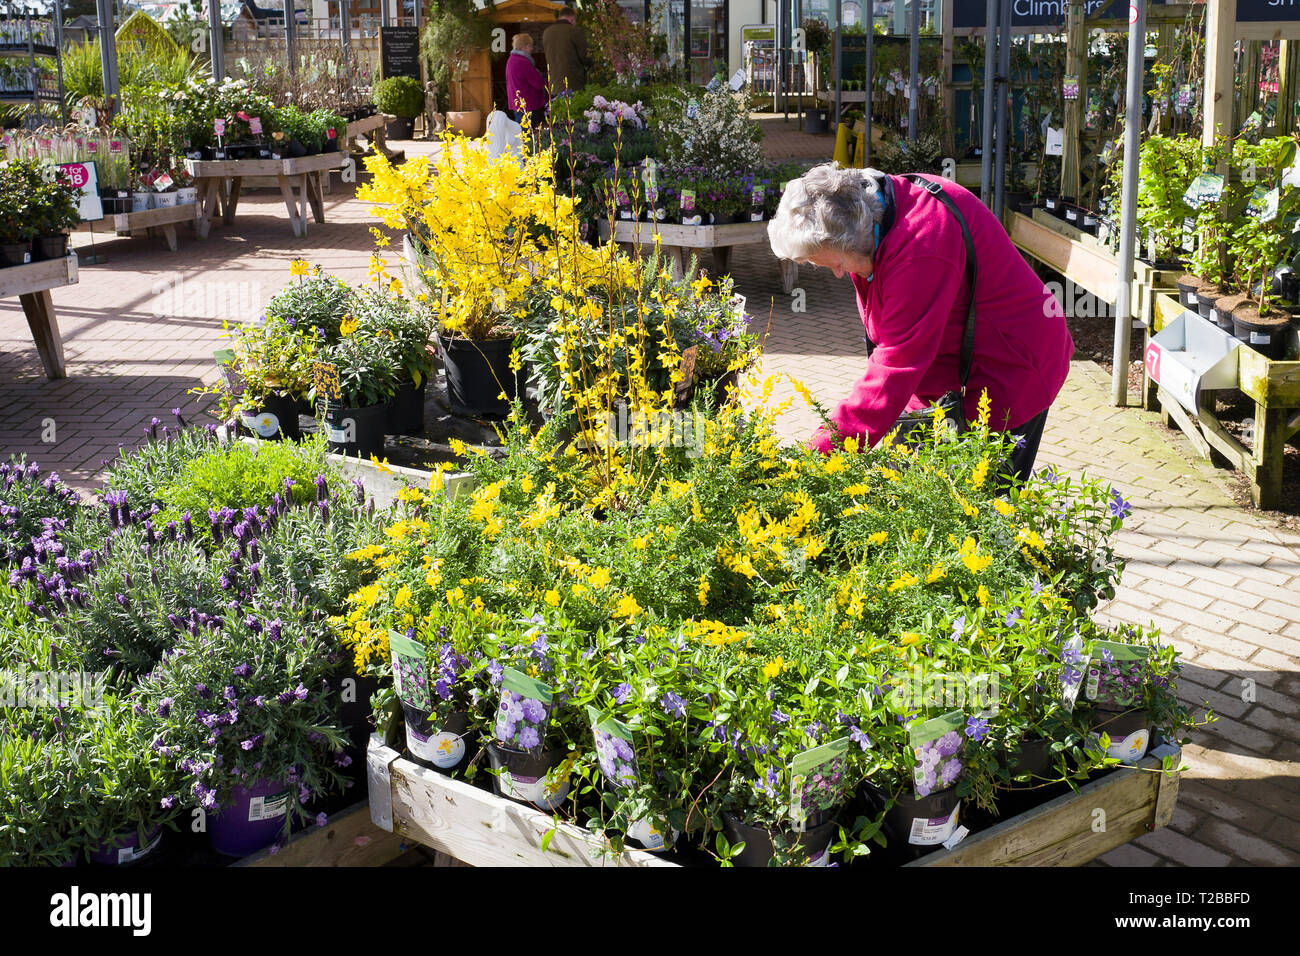 Female customer selecting plants in an English garden centre in Wiltshire England UK in Spring (looking at Genista and forsythia plants) - Stock Image